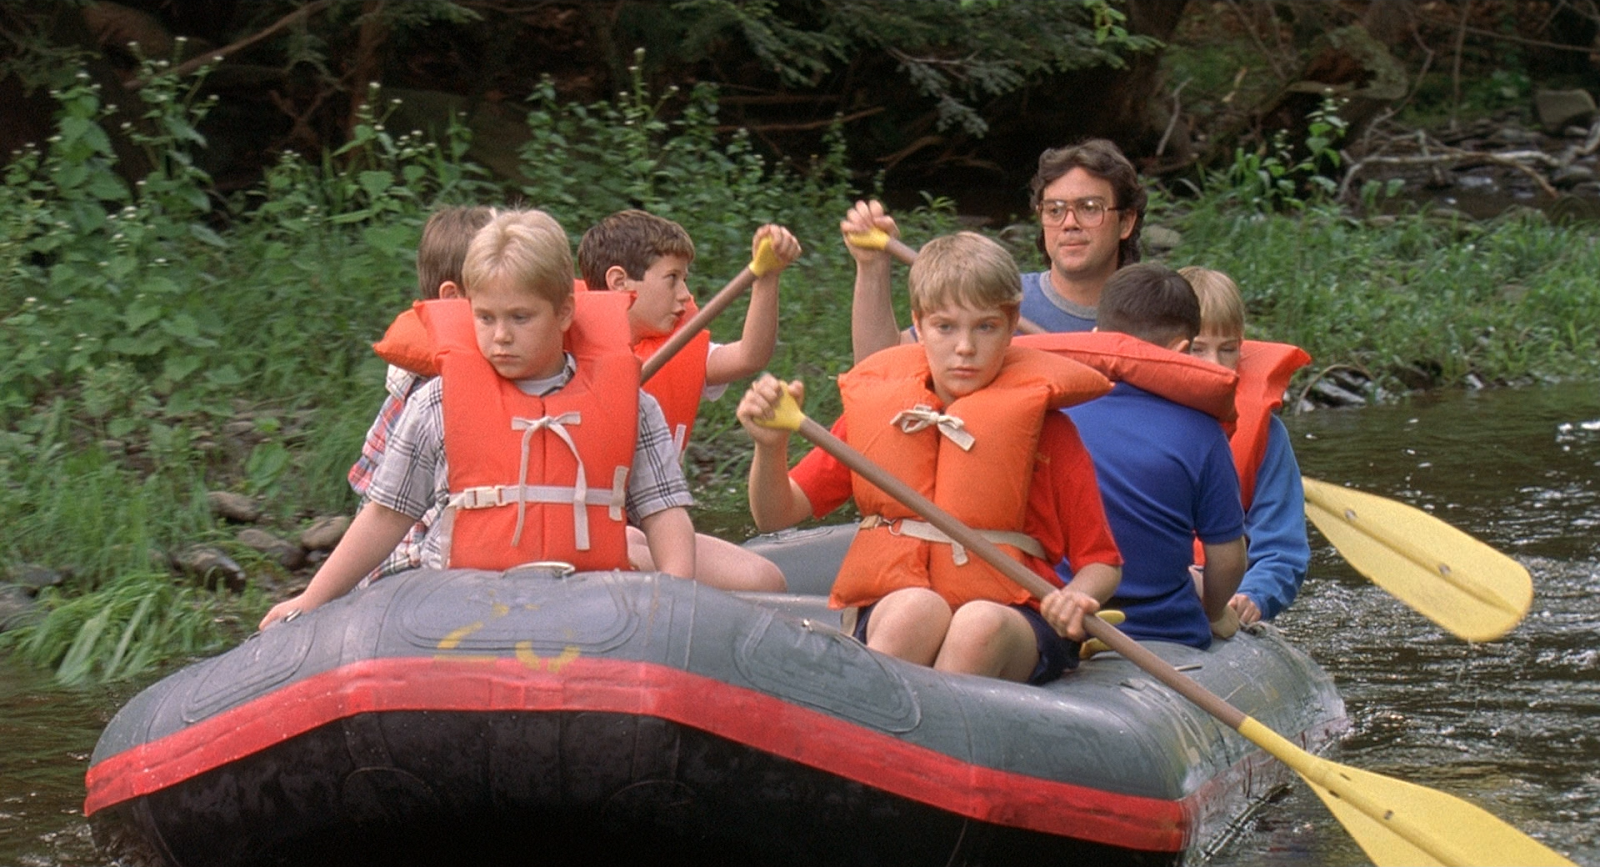 Neil (Lo Truglio) and his six young campers seen mid-rafting on a river with a green nature landscape behind them. This is right before they all decide that Neil should leave to find Victor, because otherwise they won't survive navigating through the river. Neil is sitting in the back. All children are seen wearing bright orange life jackets.